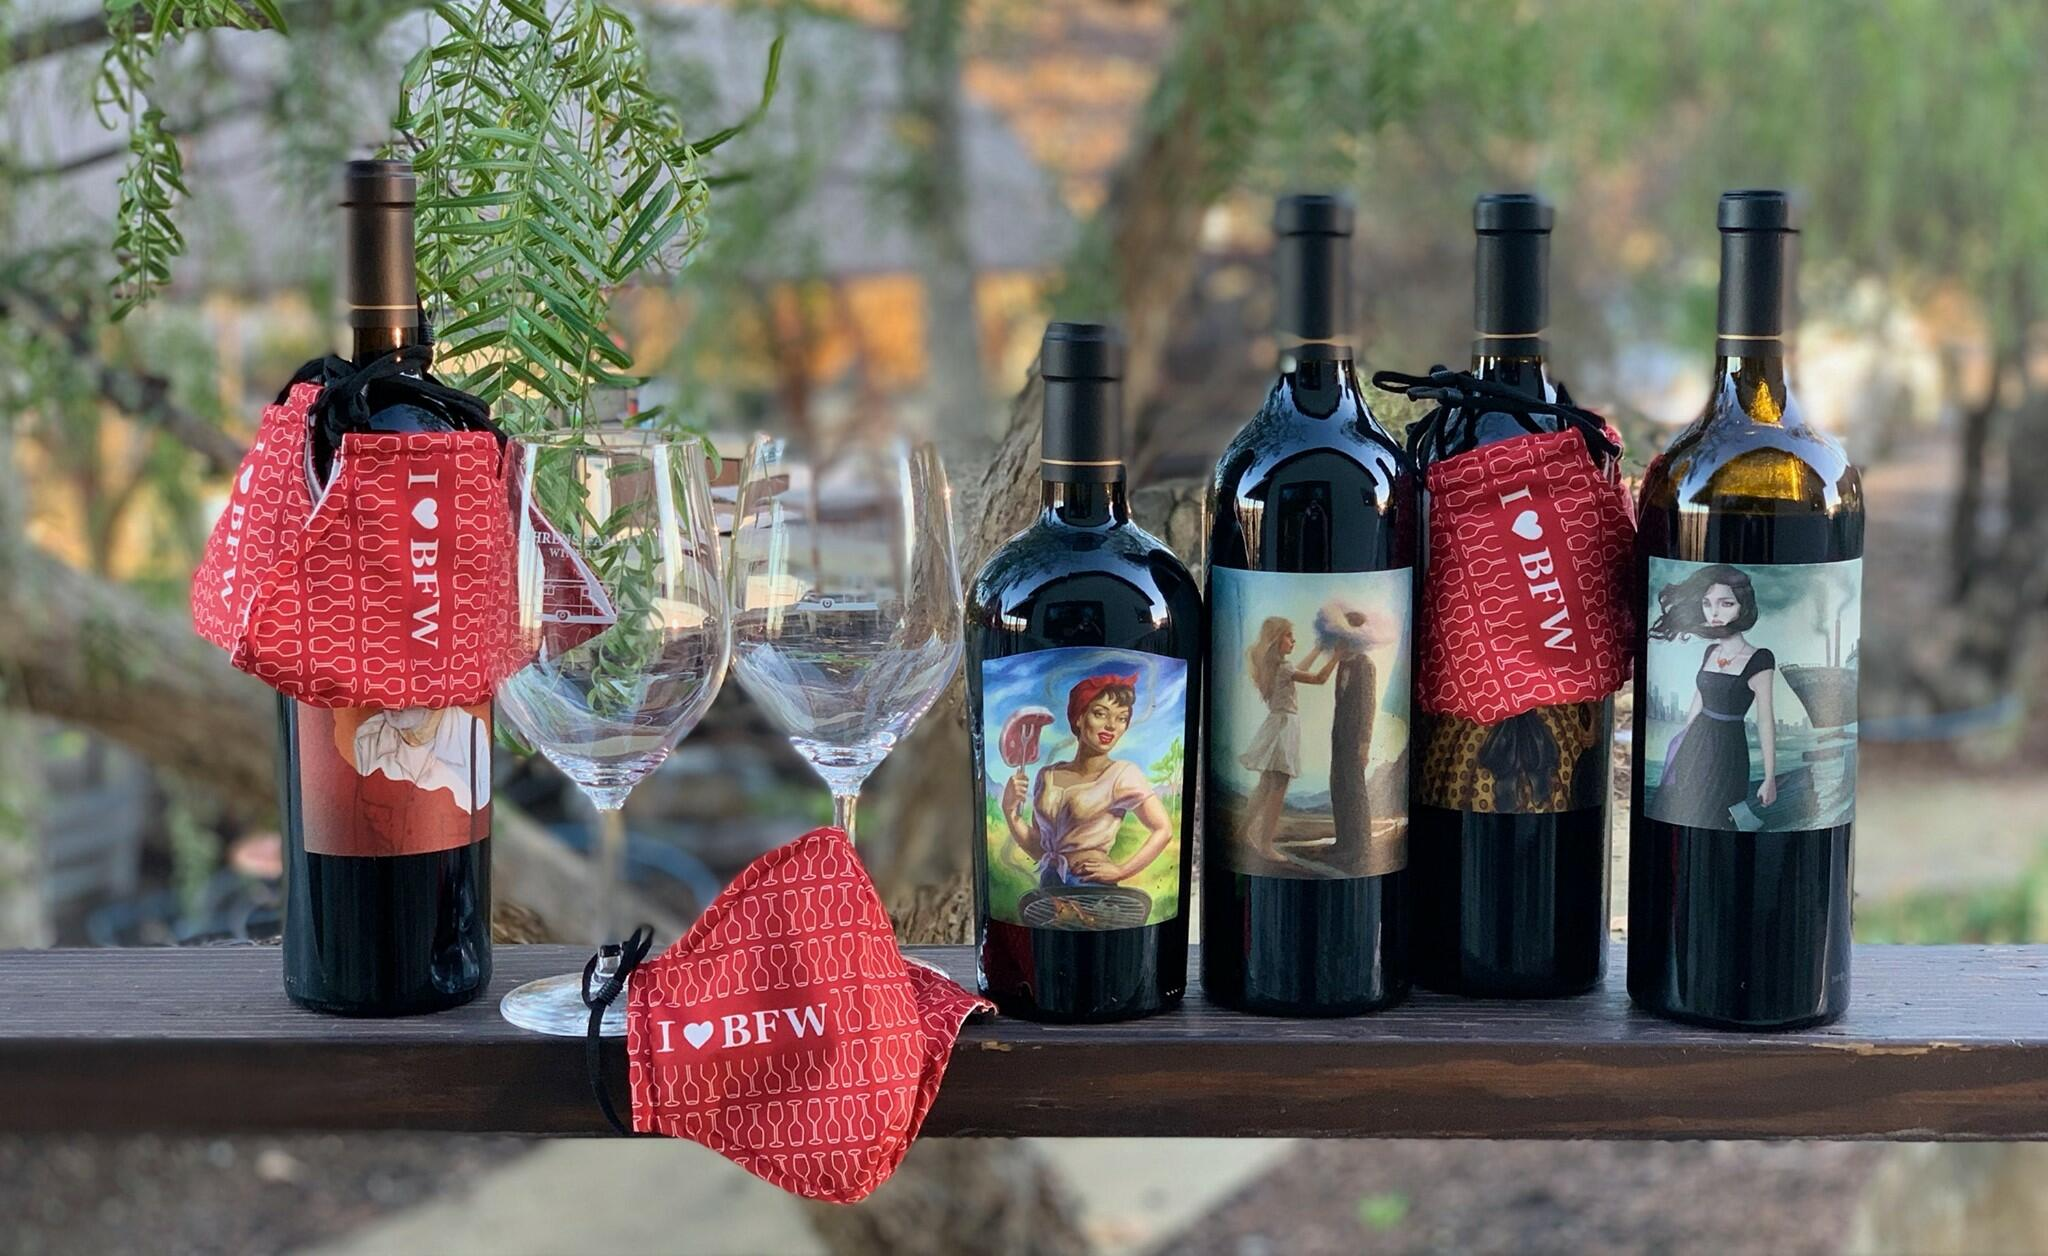 Behrens Family Winery Cover Image